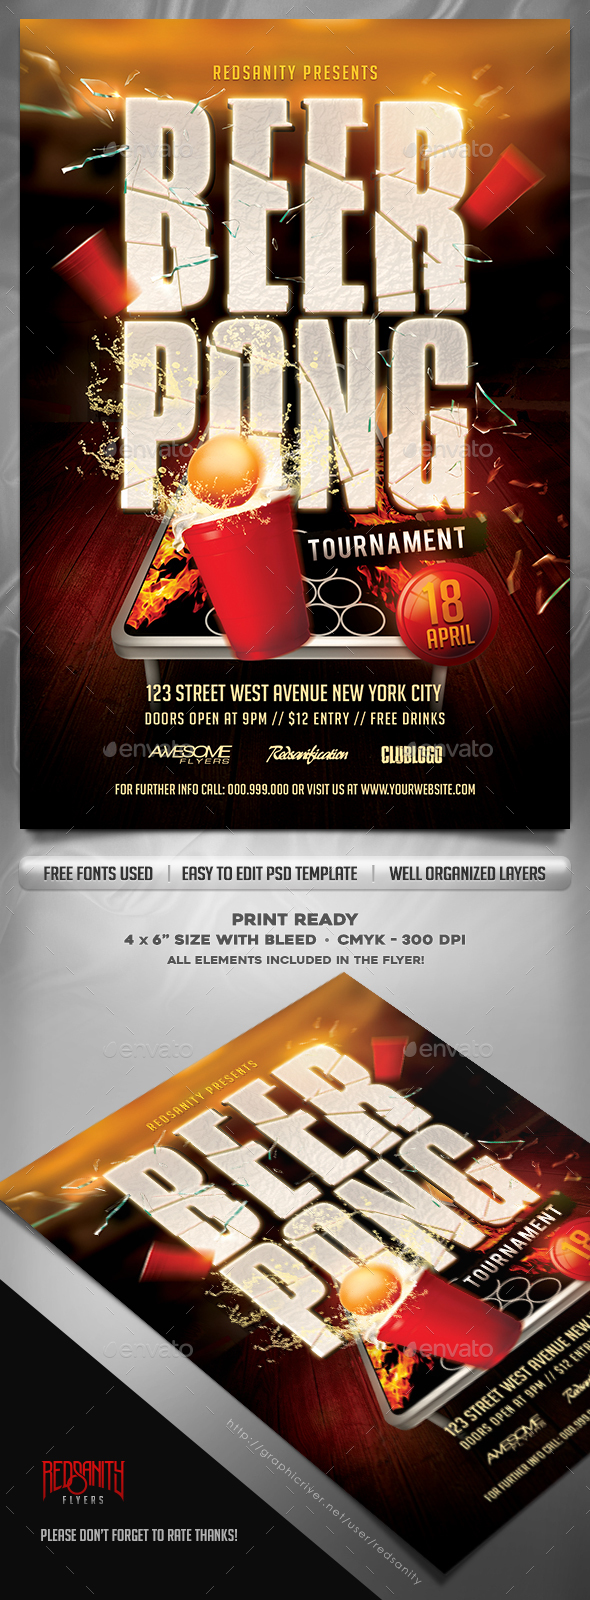 Beer Pong Tournament Flyer Template by Redsanity | GraphicRiver